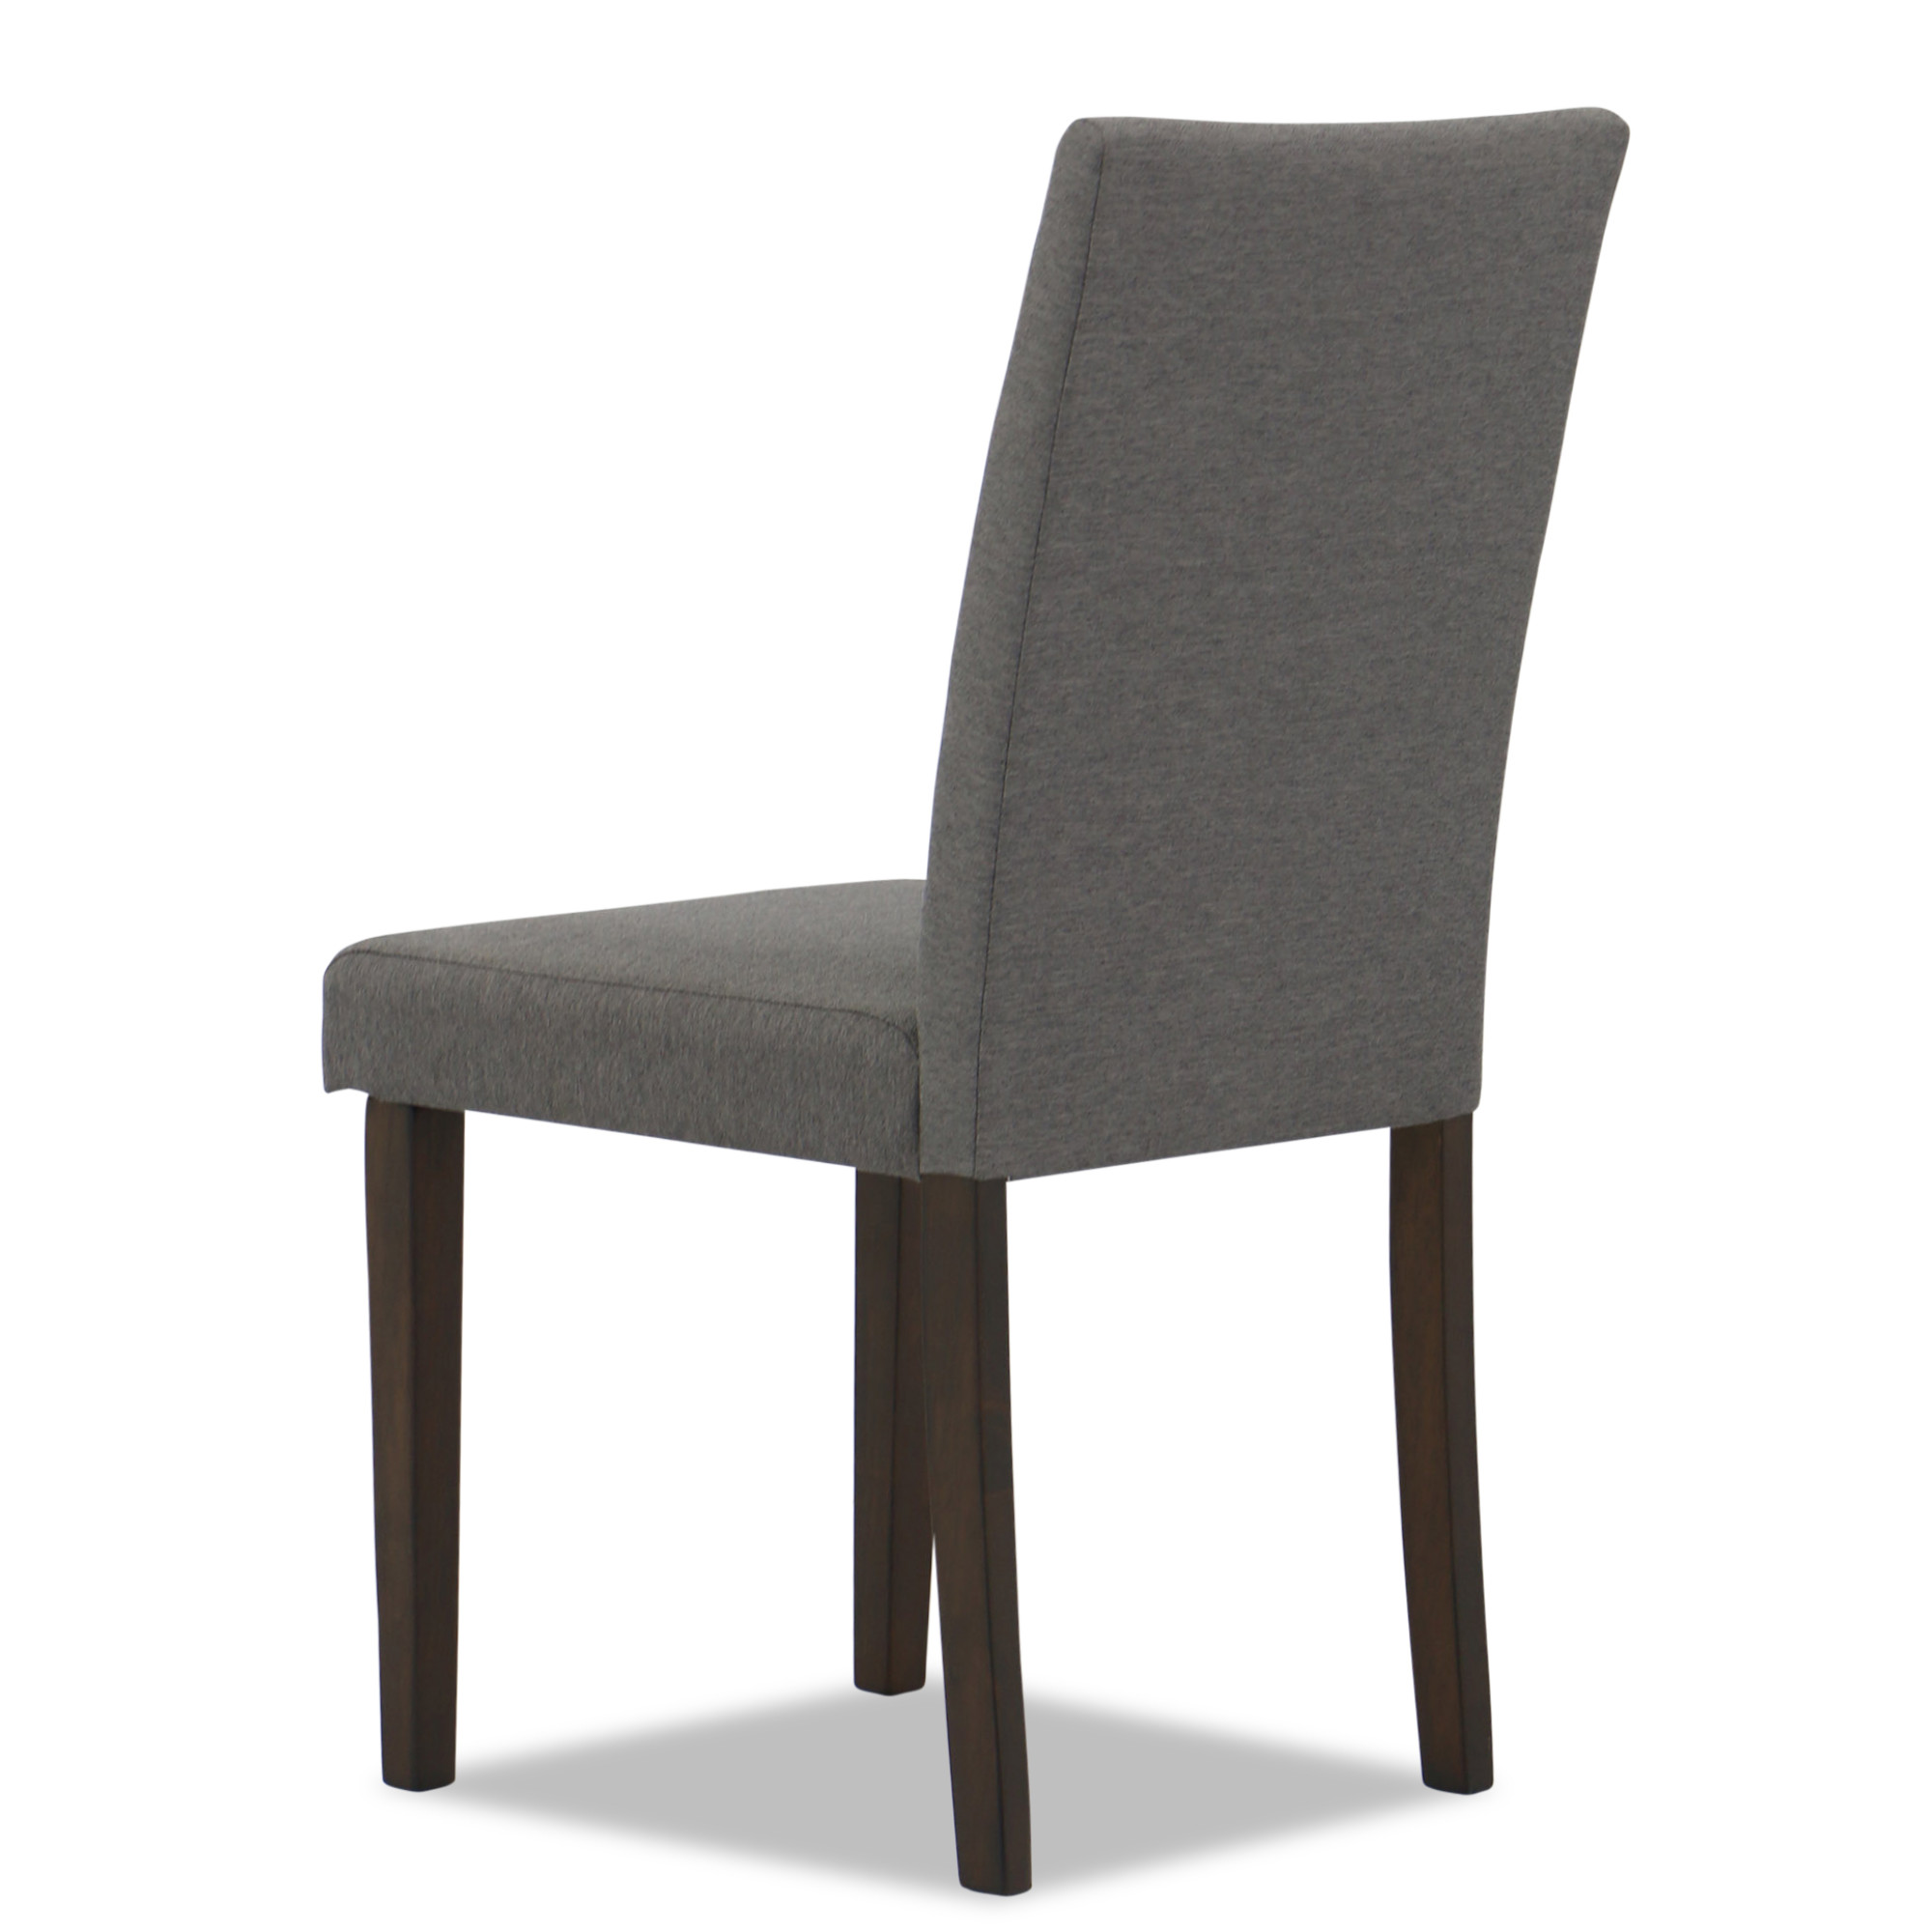 Chairs Dining Libby Dining Chair Wenge Furniture And Home Décor Fortytwo